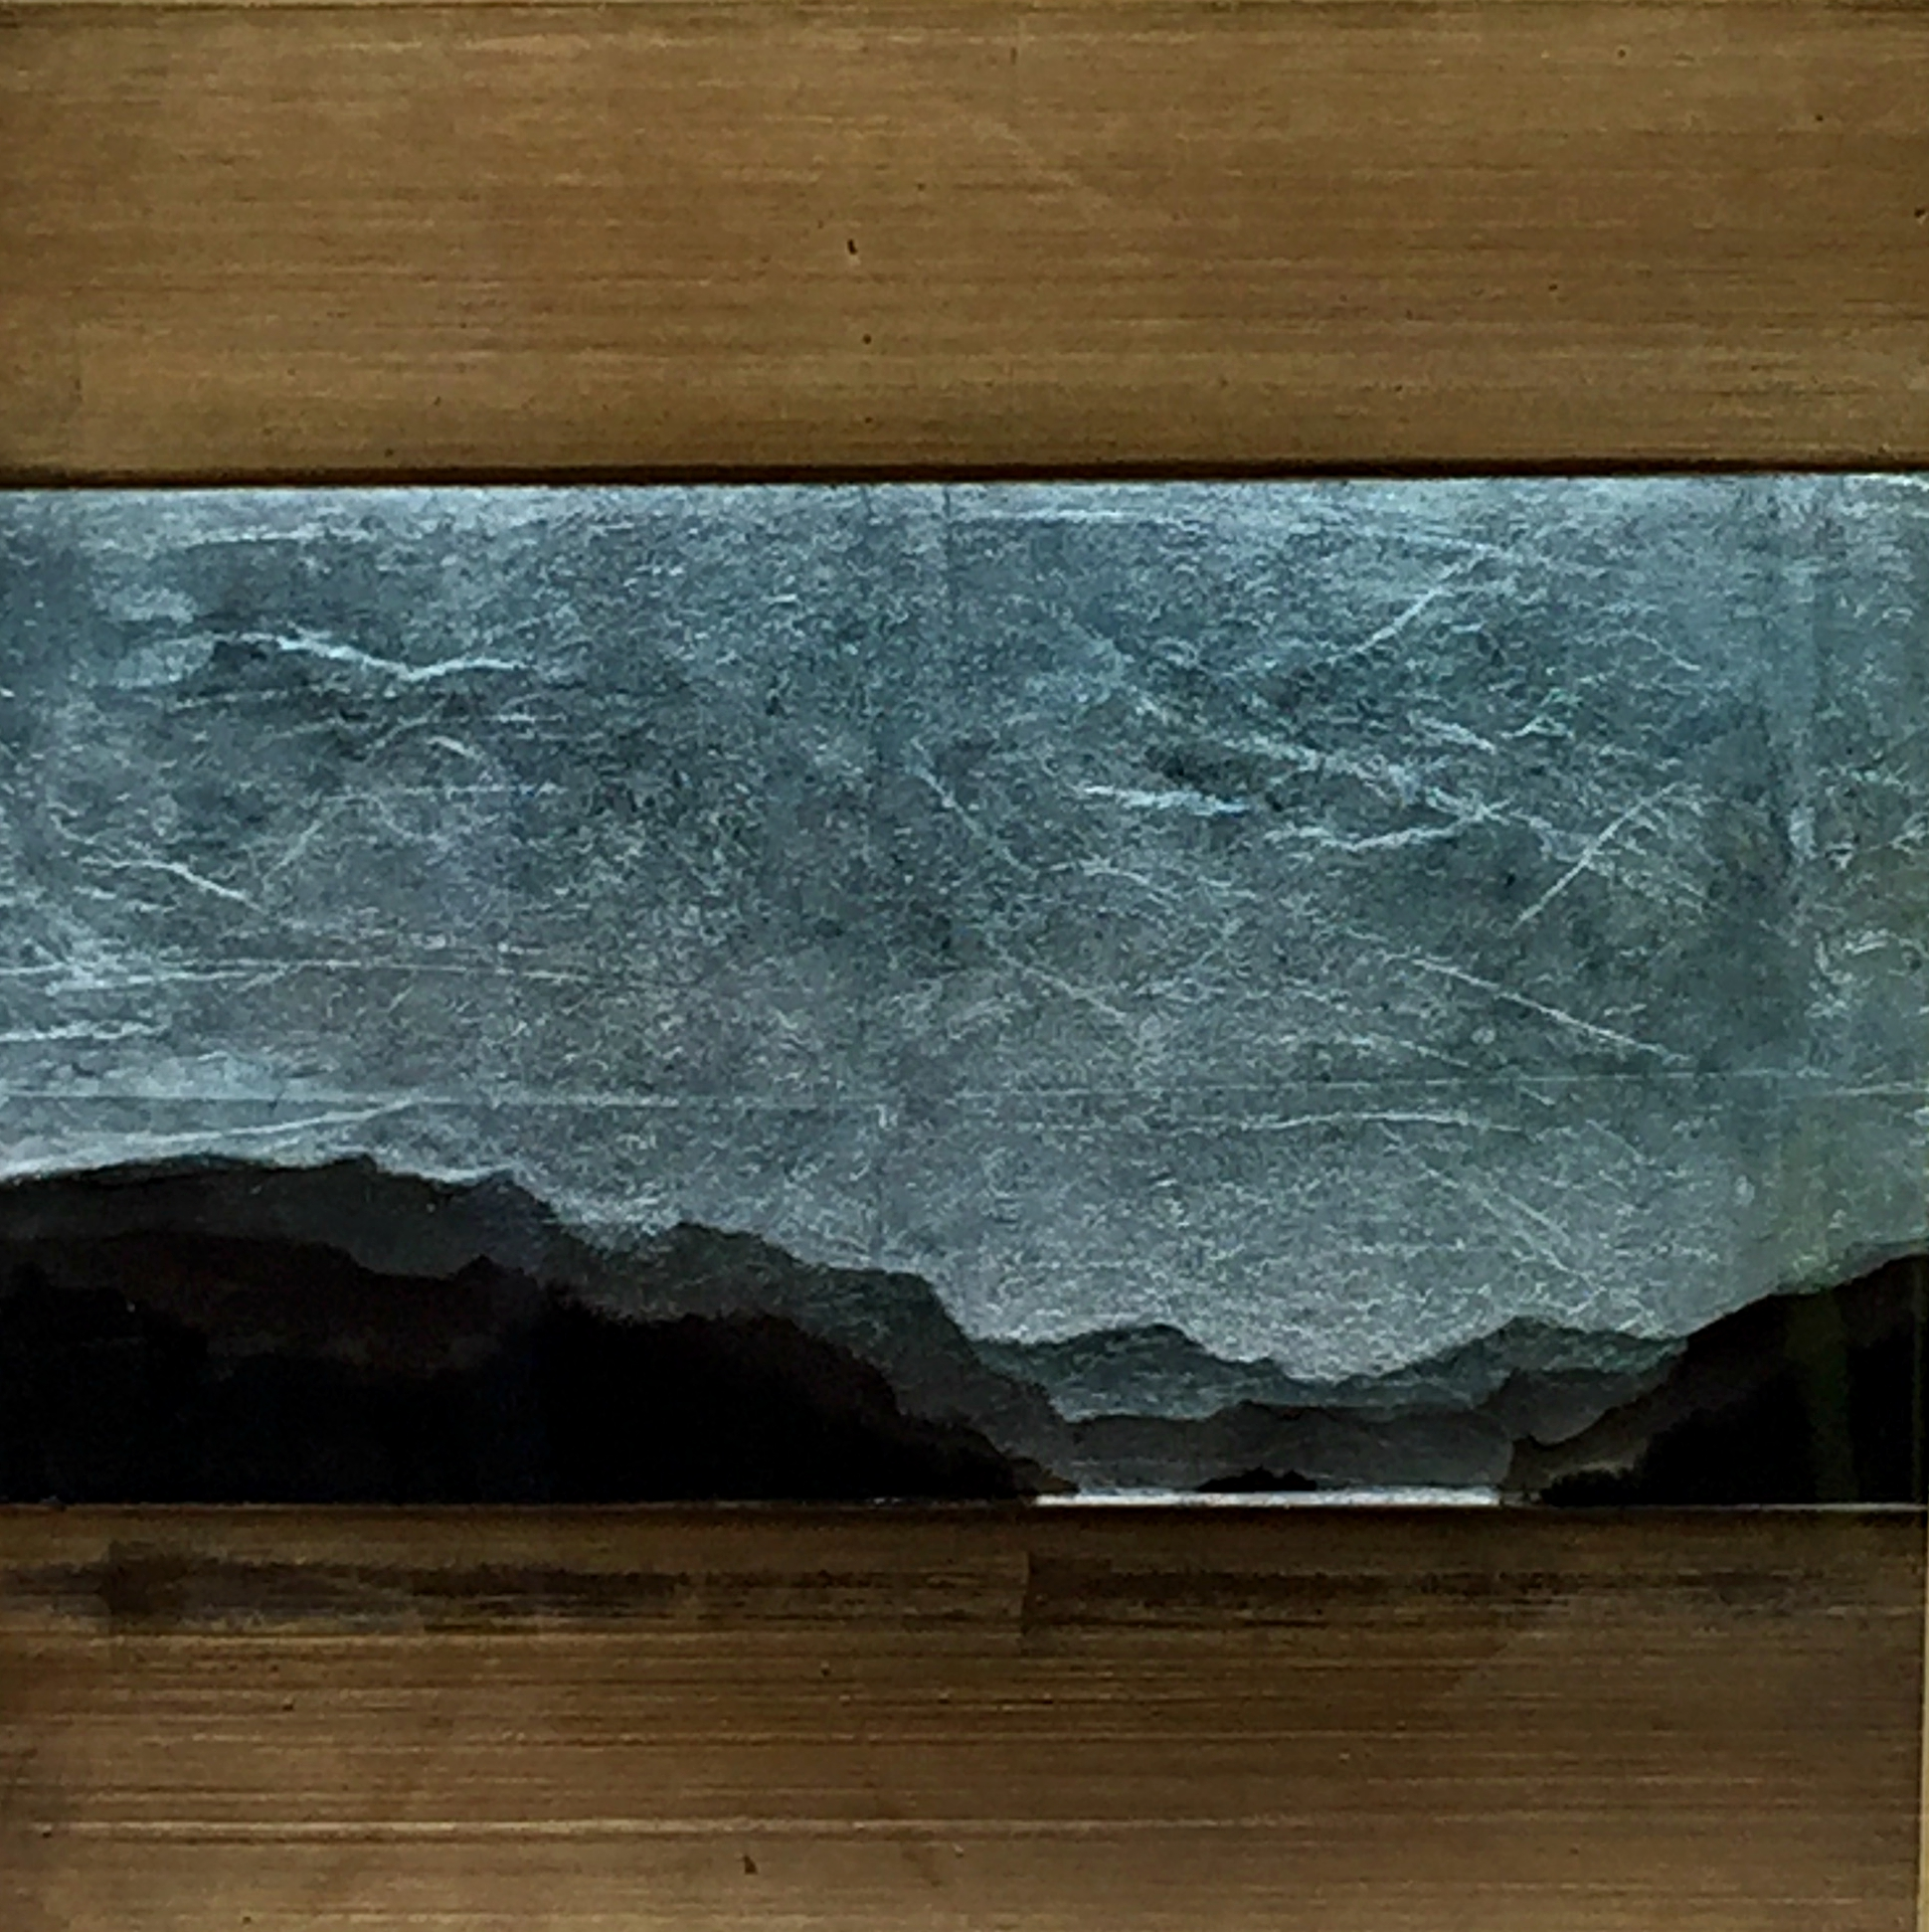 #550, mixed media landscape painting by David Graff | Effusion Art Gallery + Cast Glass Studio, Invermere BC